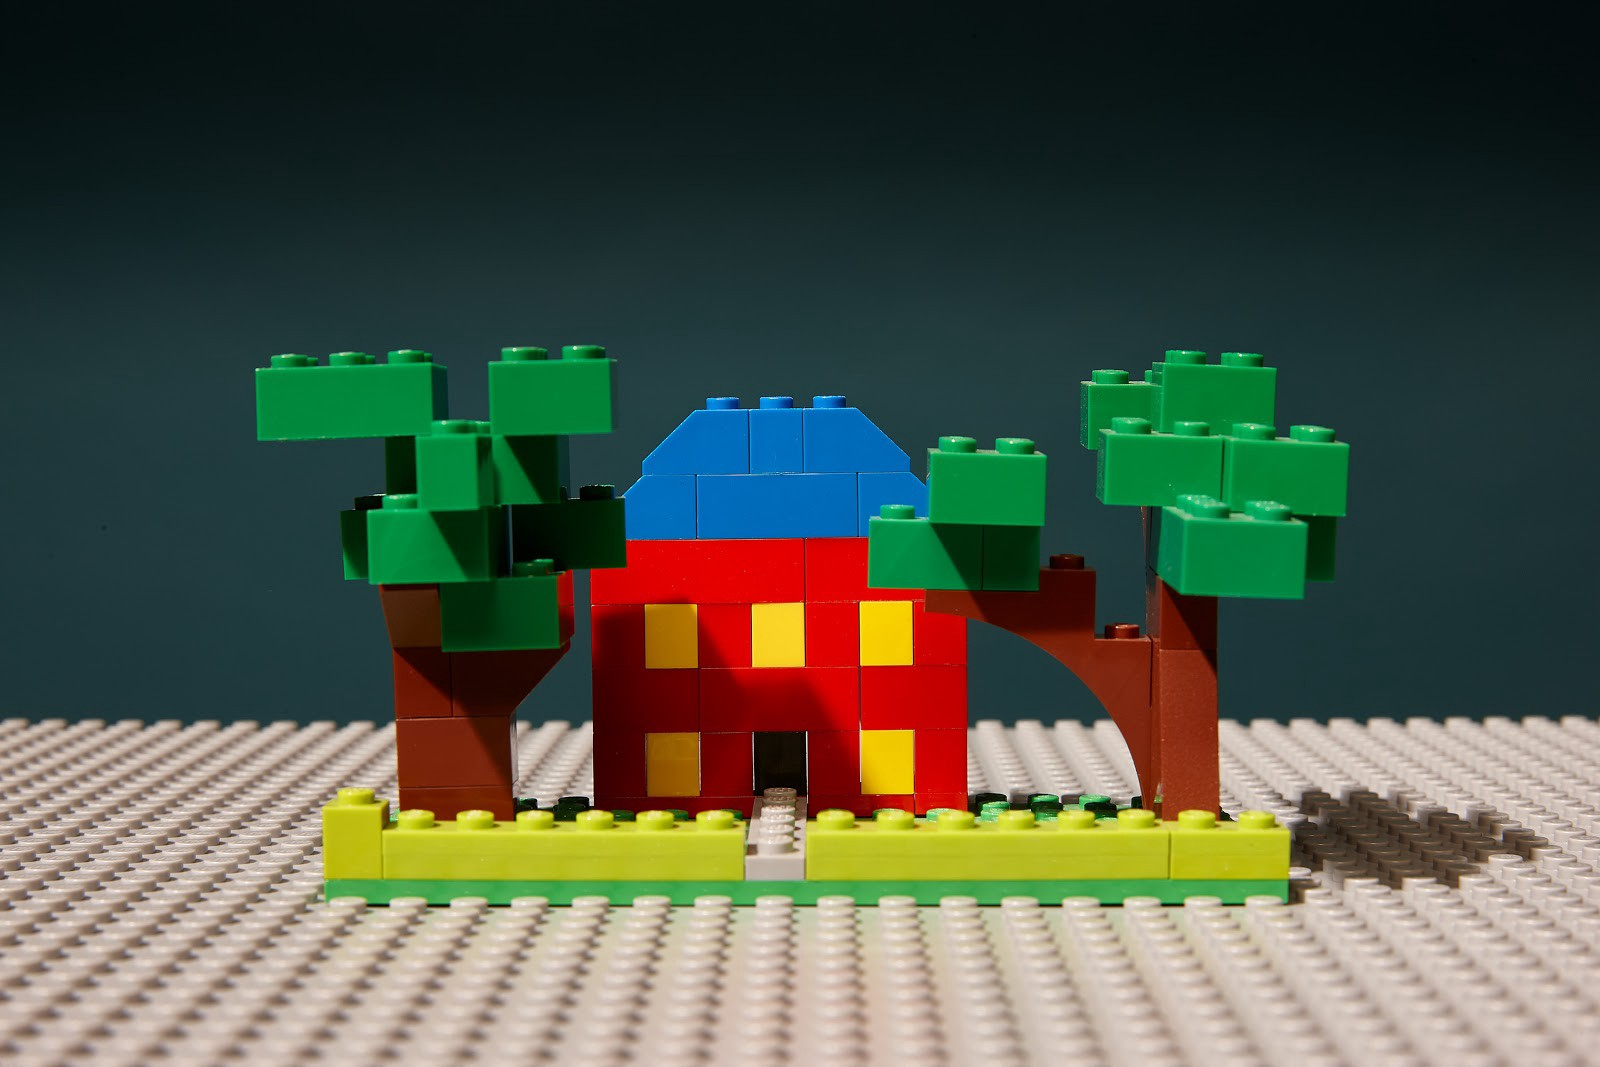 A house made of Legos